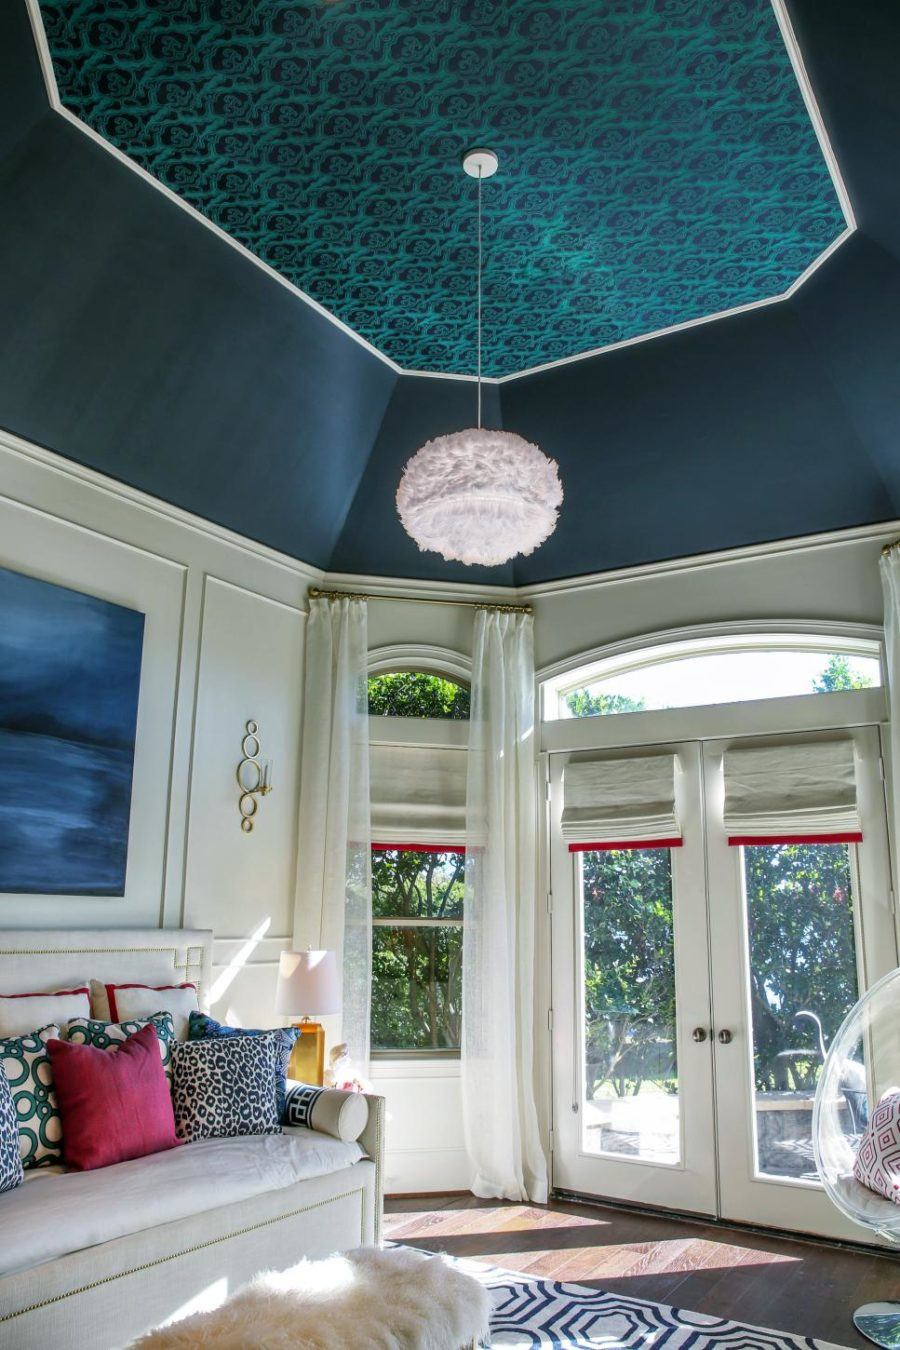 Unique Ceiling Design Unique Ceiling Designs for House Of Every Style